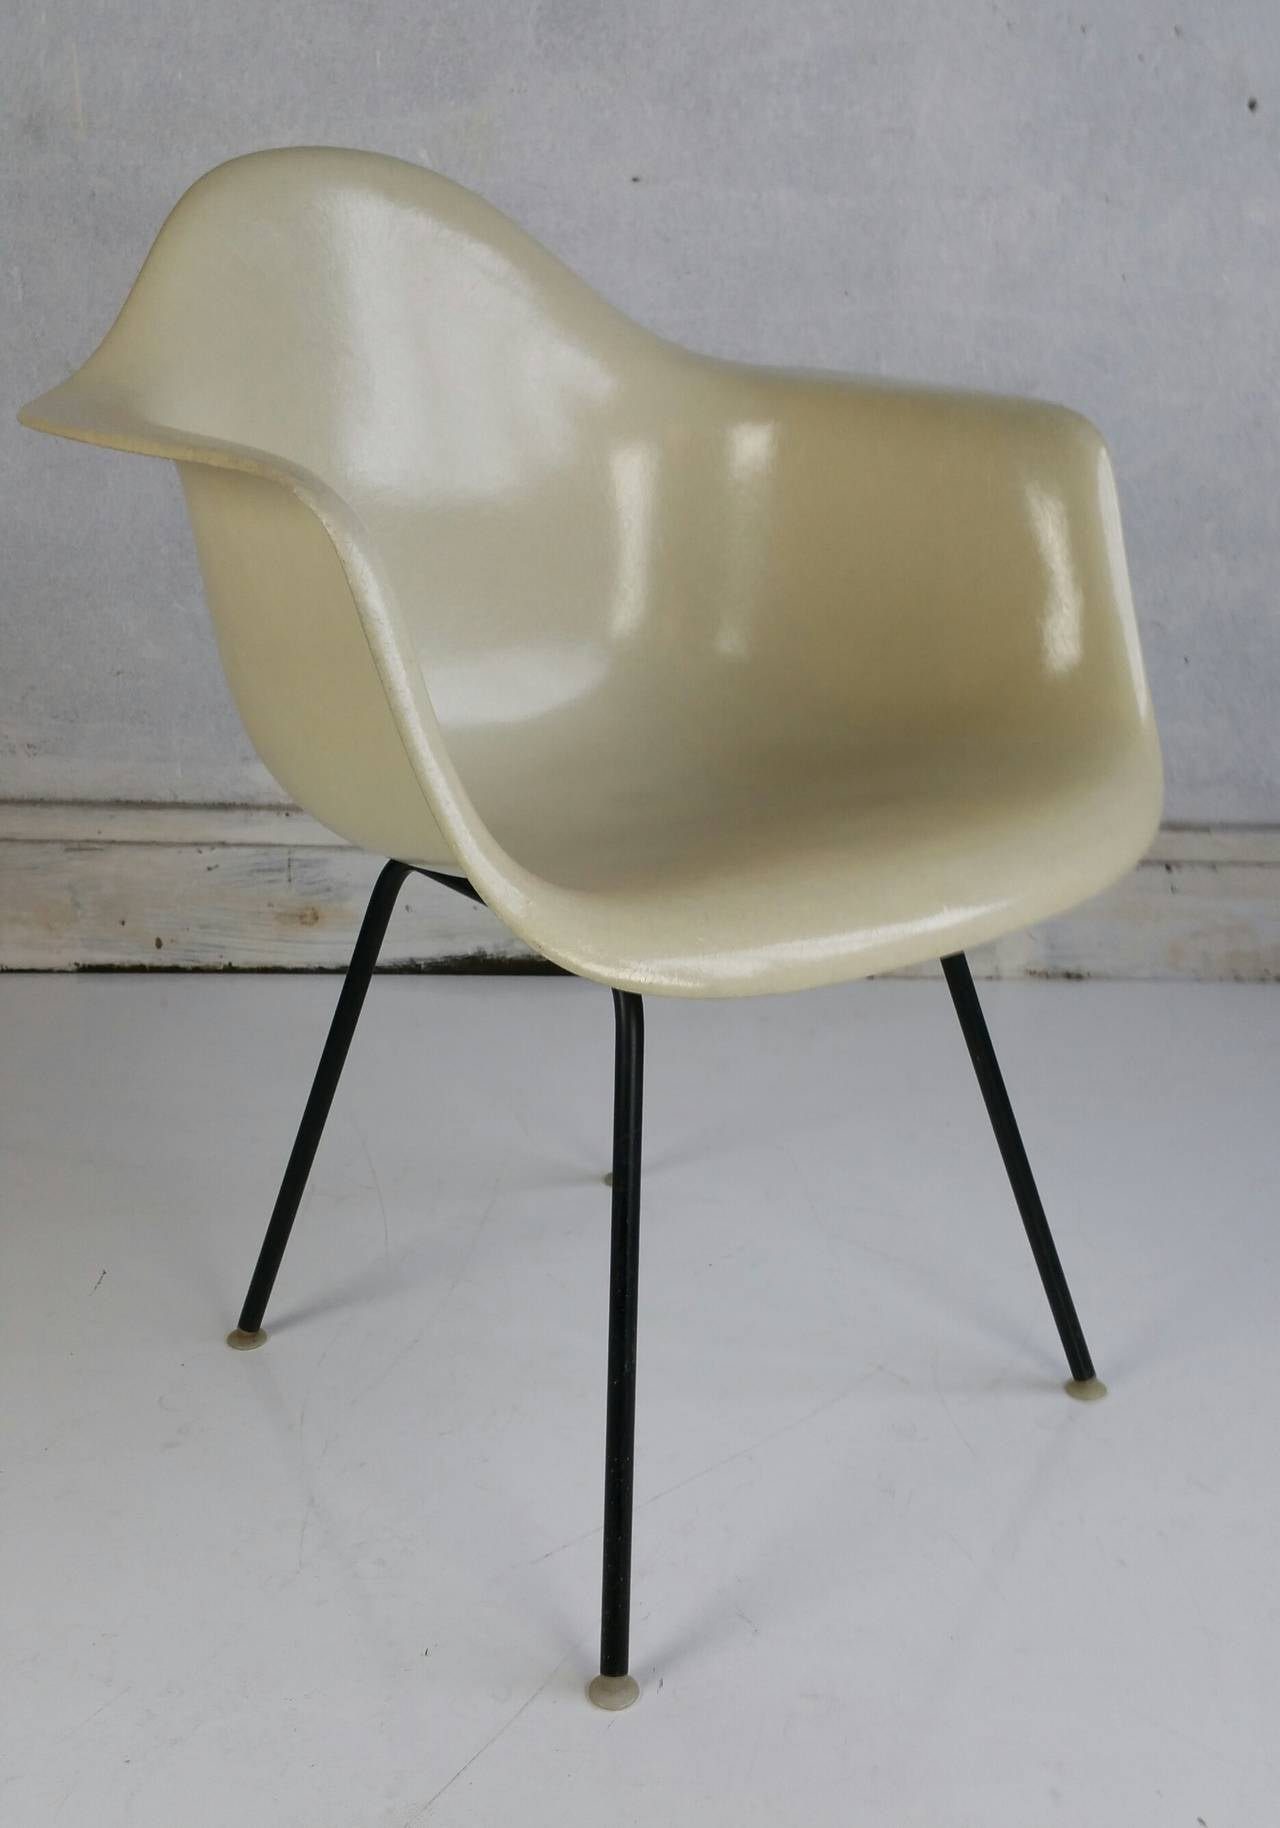 Charles Eames Parchment Arm Shell Chair Herman Miller For Sale at